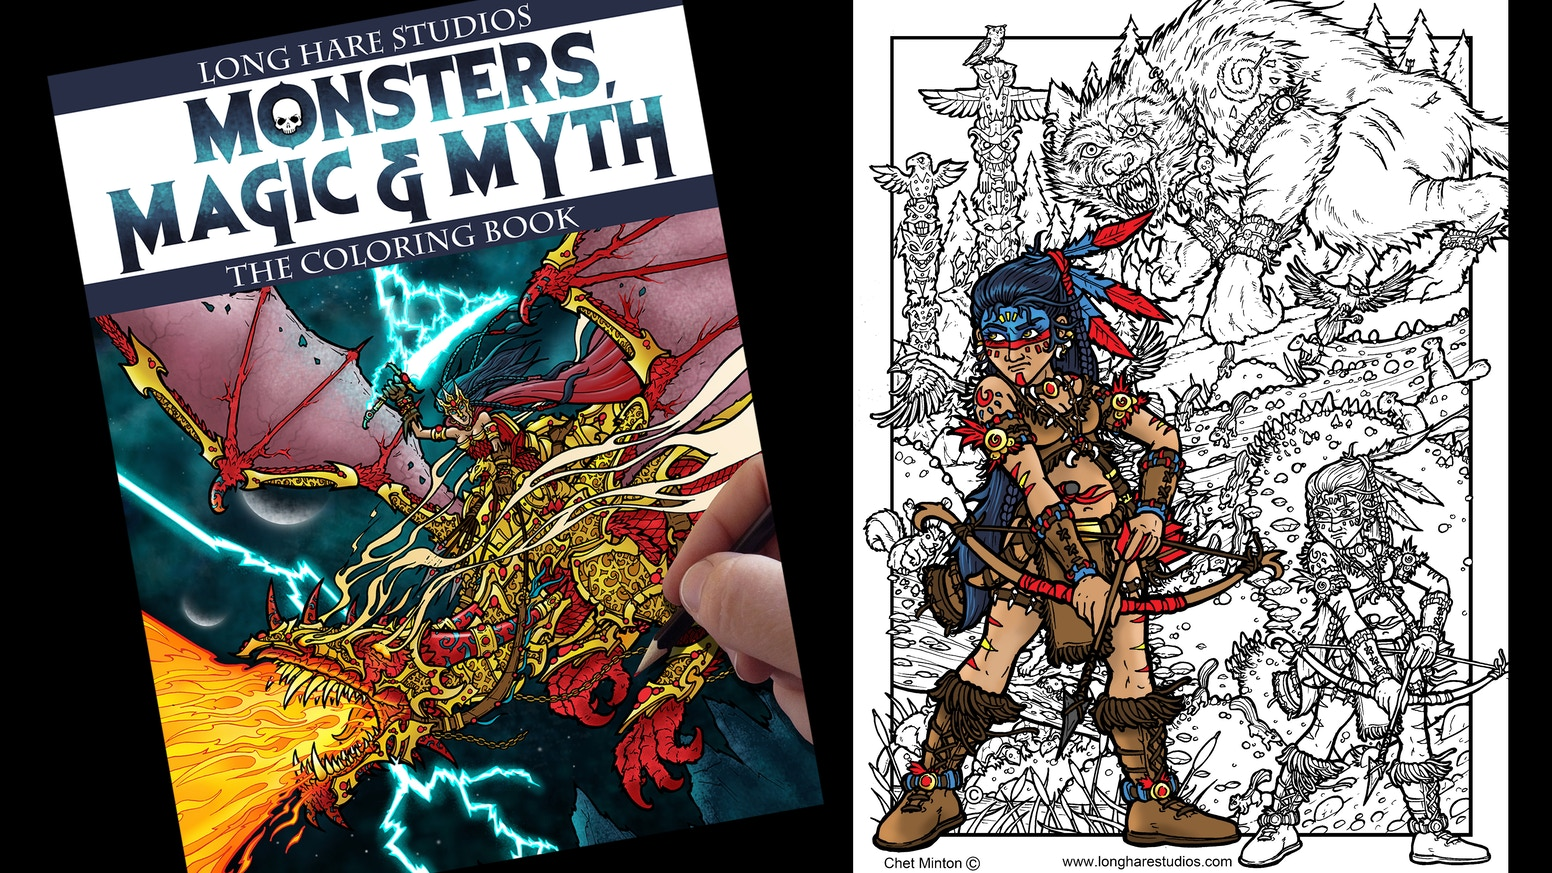 Monster, Magic and Myth - The Coloring Book by Chet Minton — Kickstarter